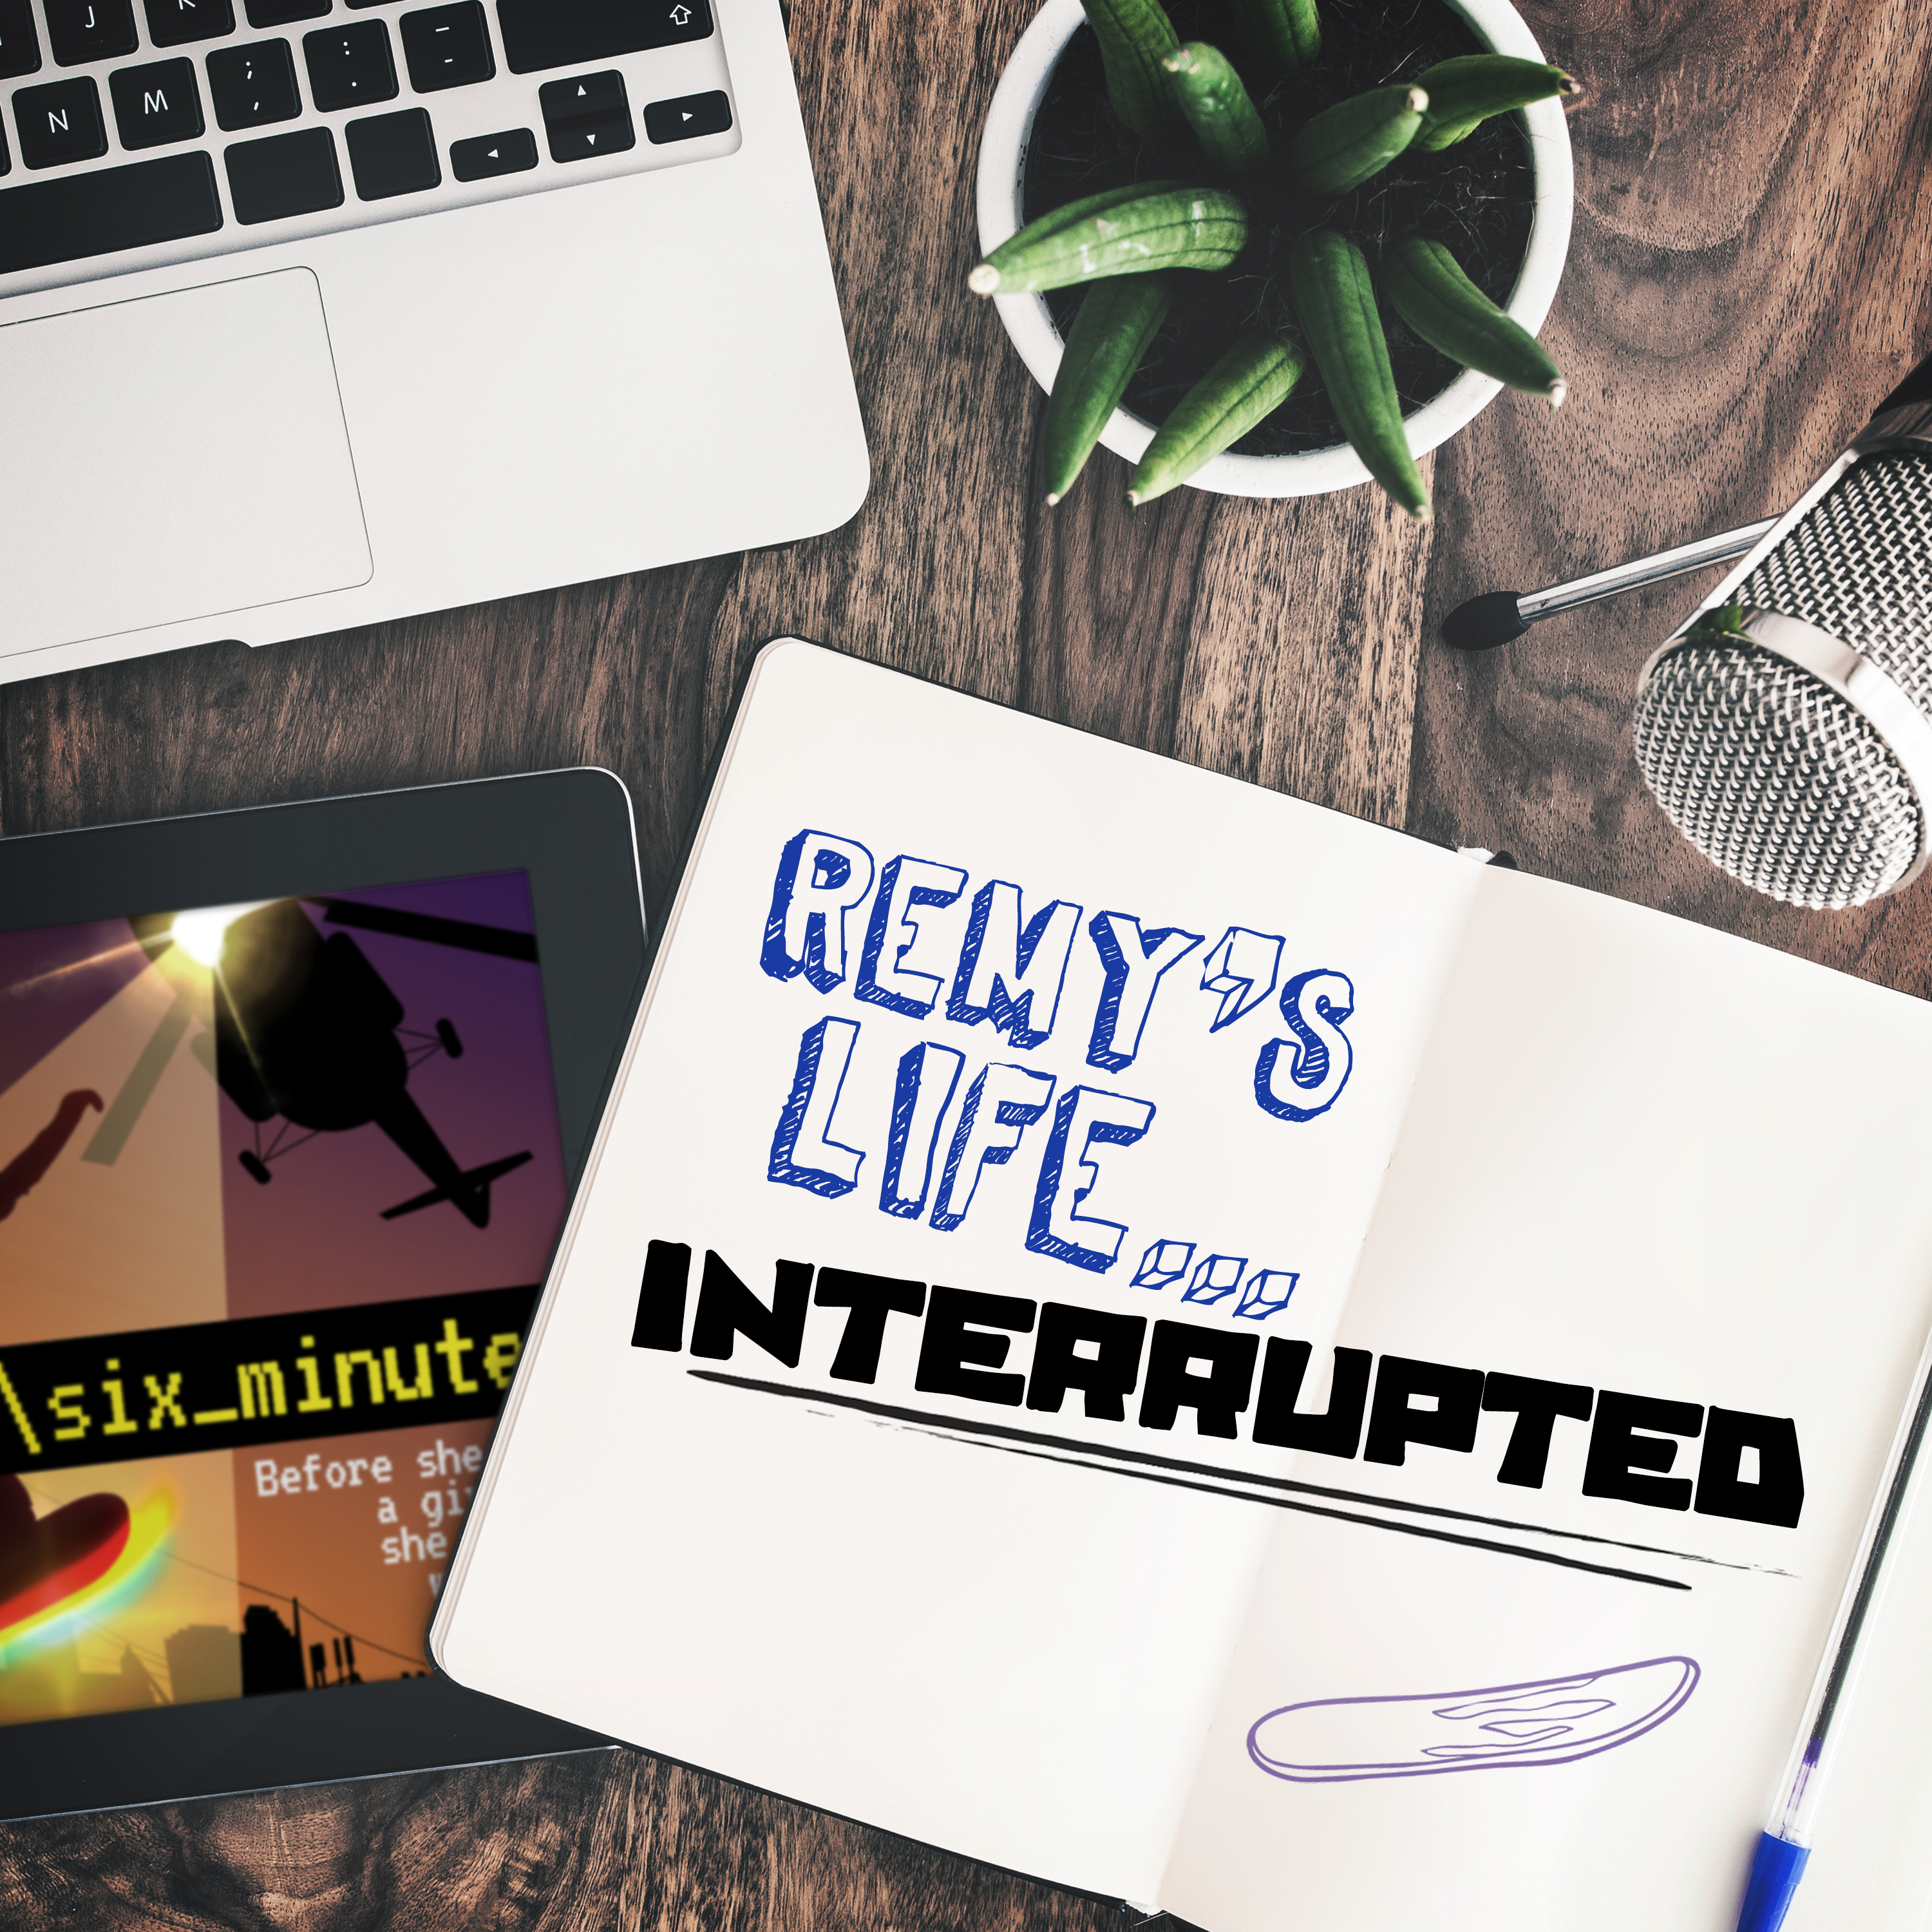 Remy's Life Interrupted: EP75